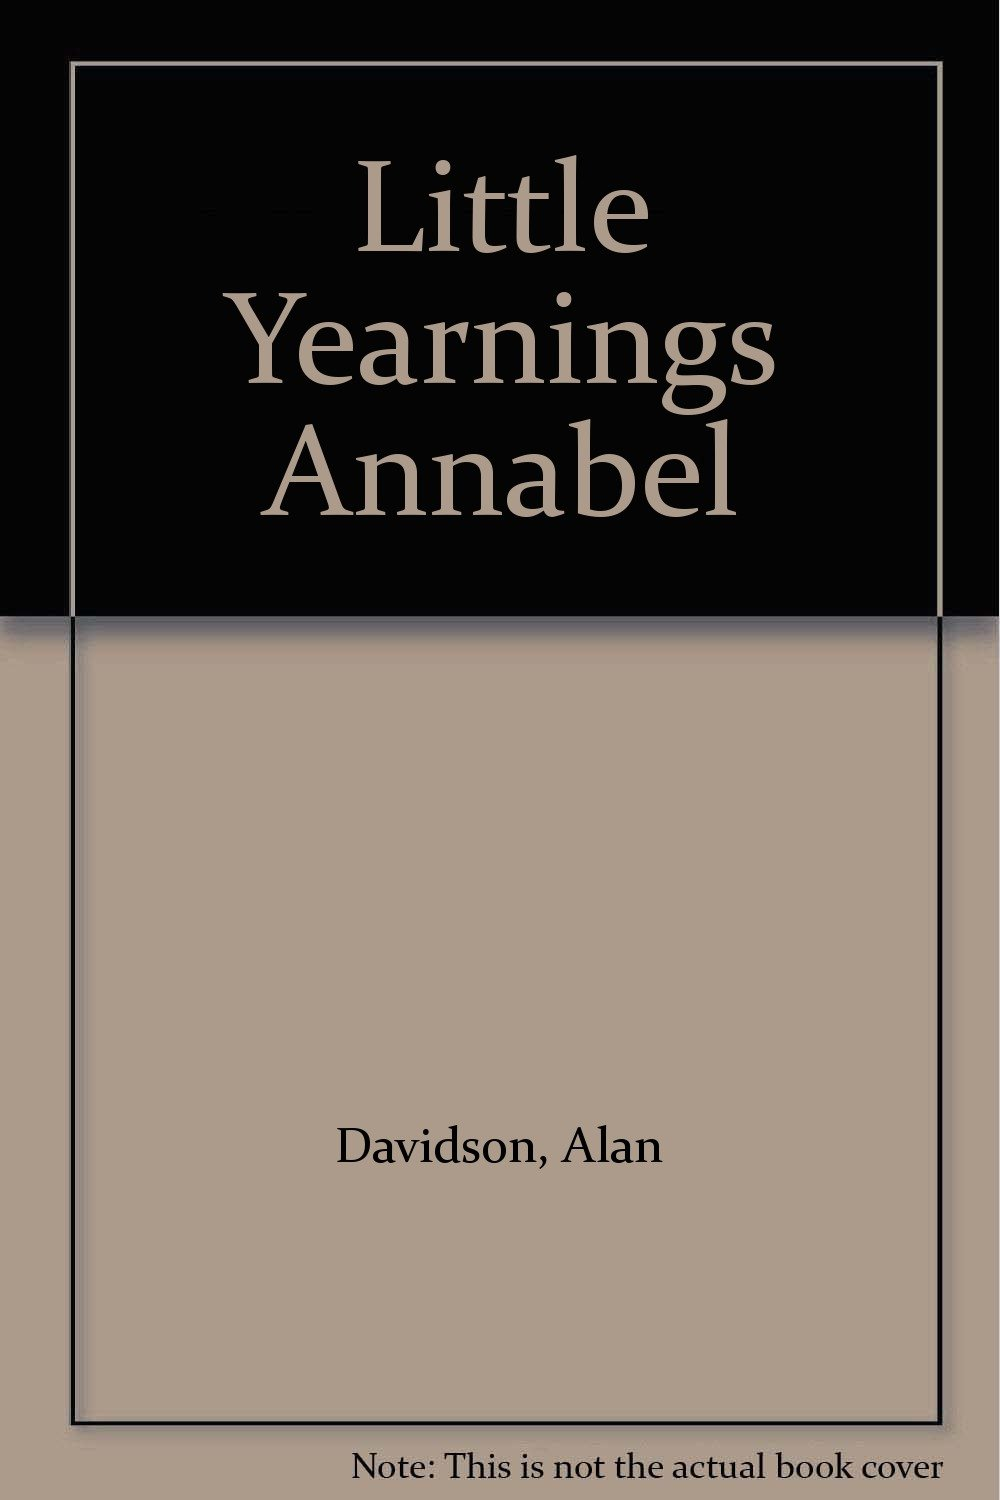 Annabels Yearnings